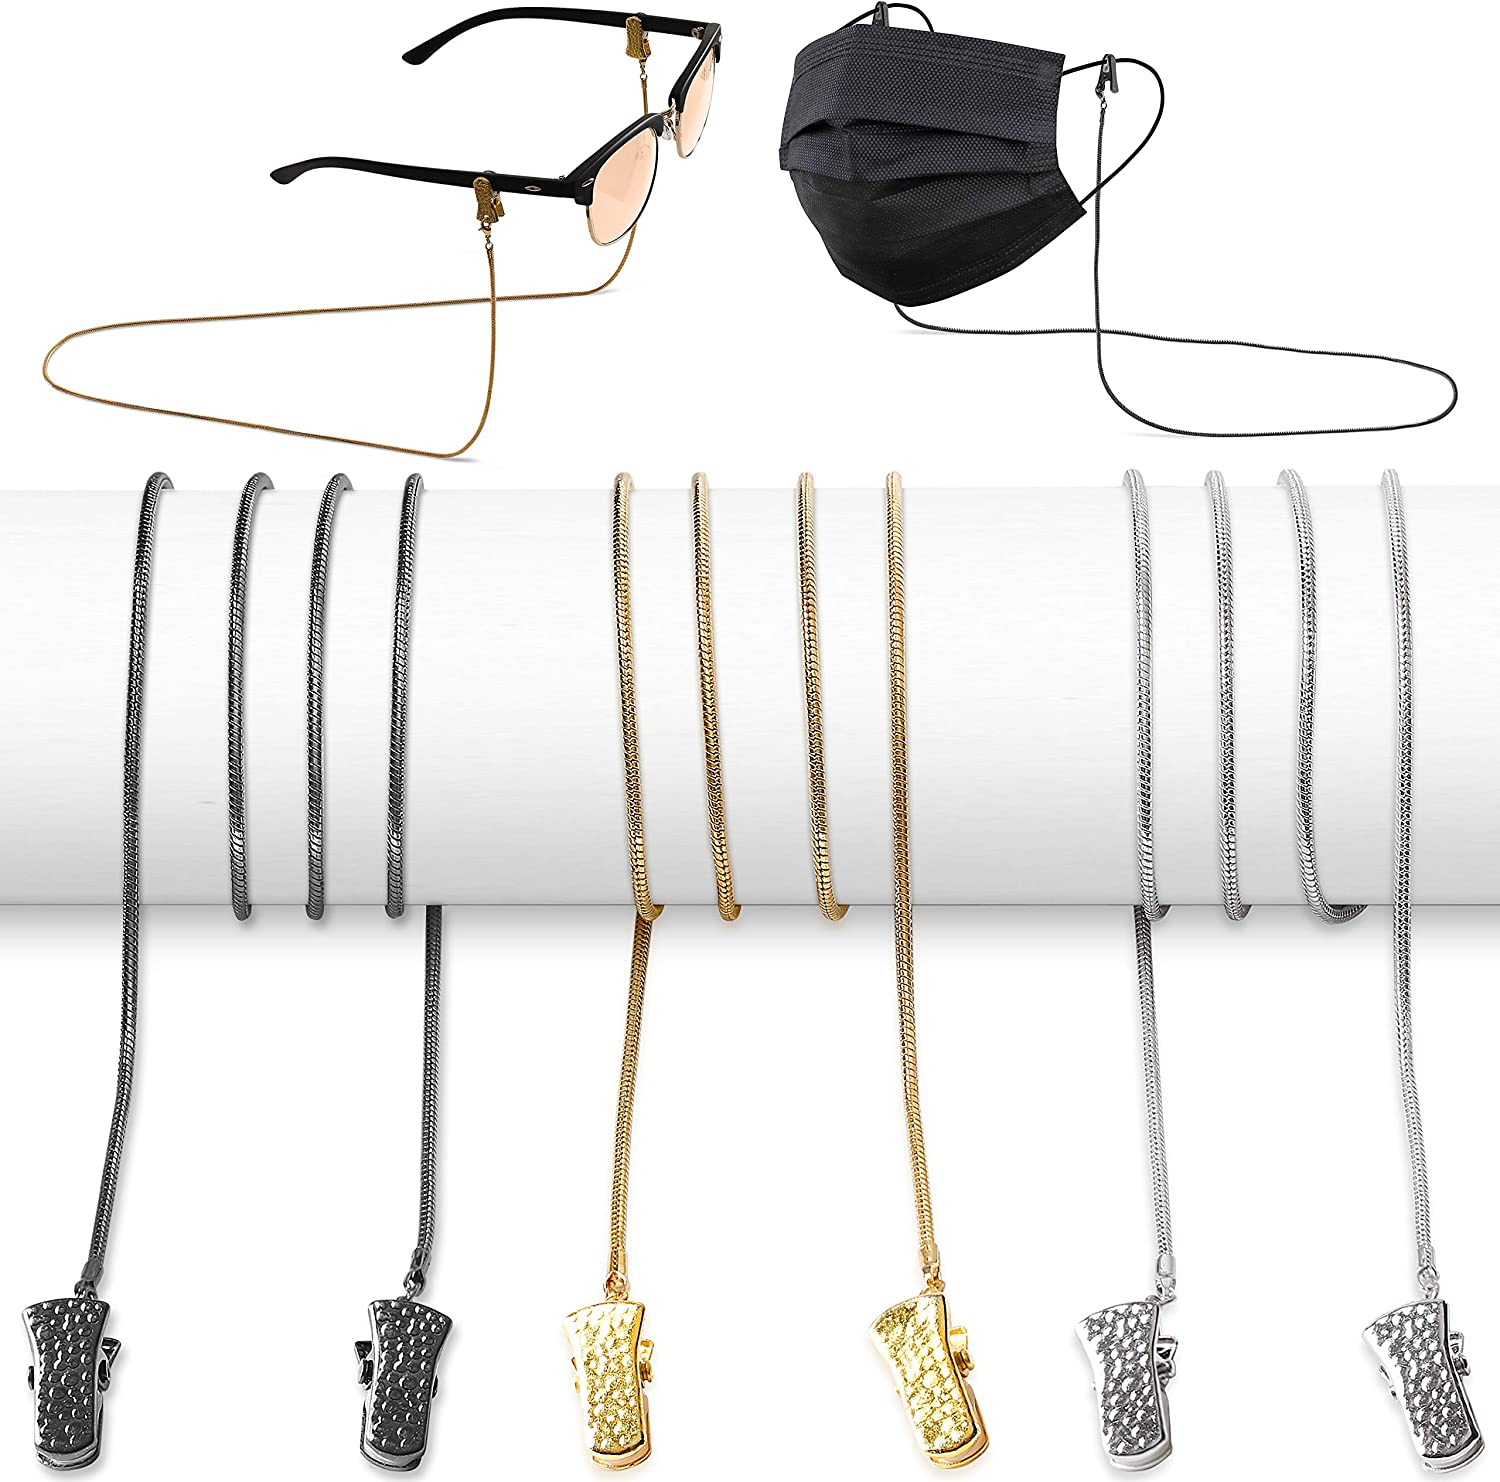 67% OFF of fixed High quality price Eyeglass Chain for Women - Metal Glasses Eyeglasses Hold